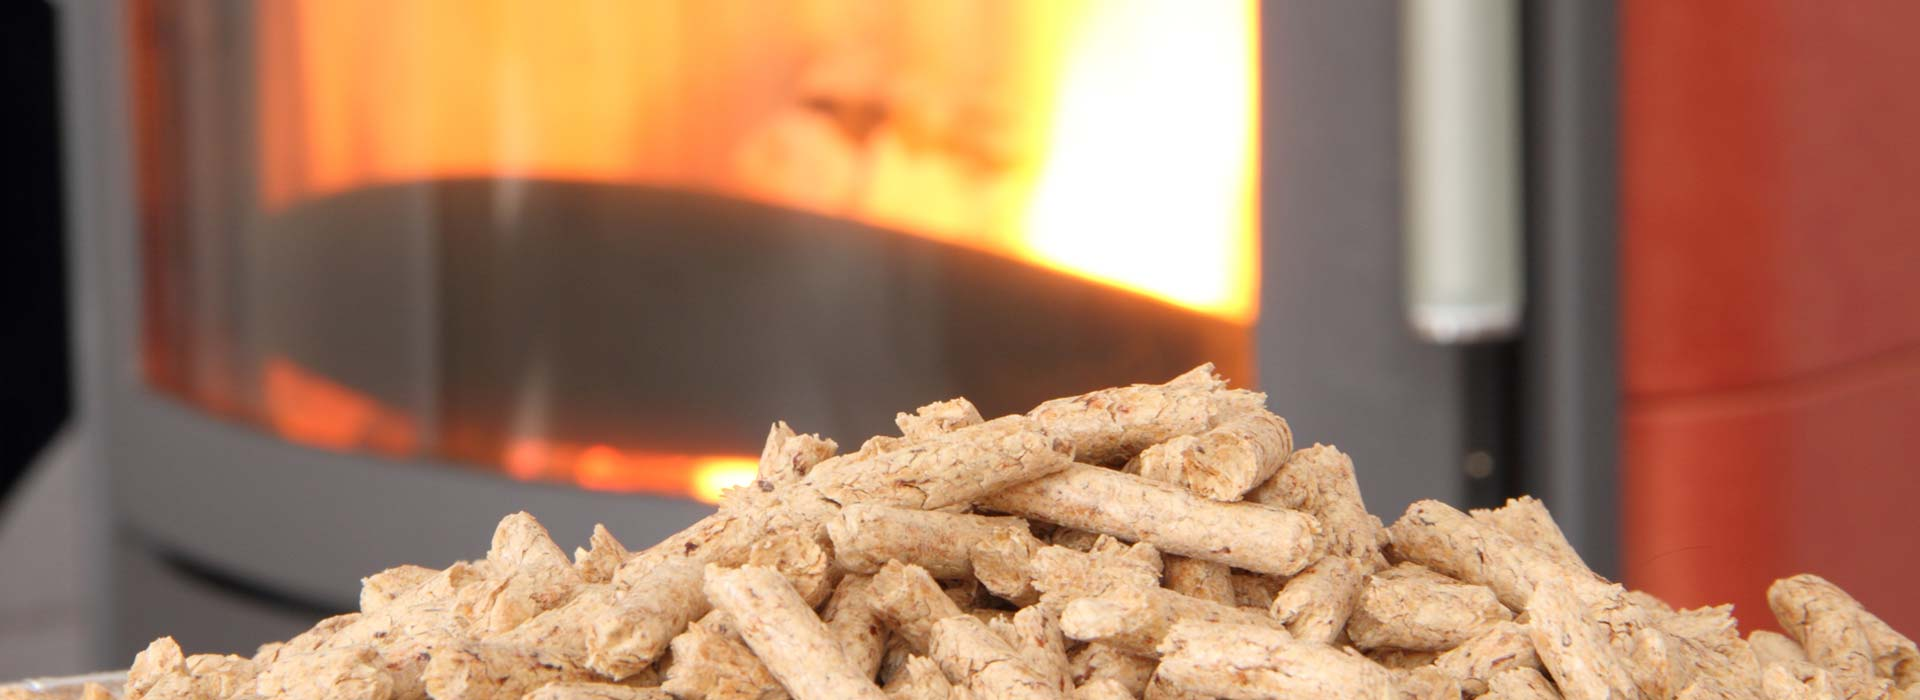 White Flame Inc, Lindon Utah, Wood Pellets, Wood Pellet Stove, Pellet, Clean Energy